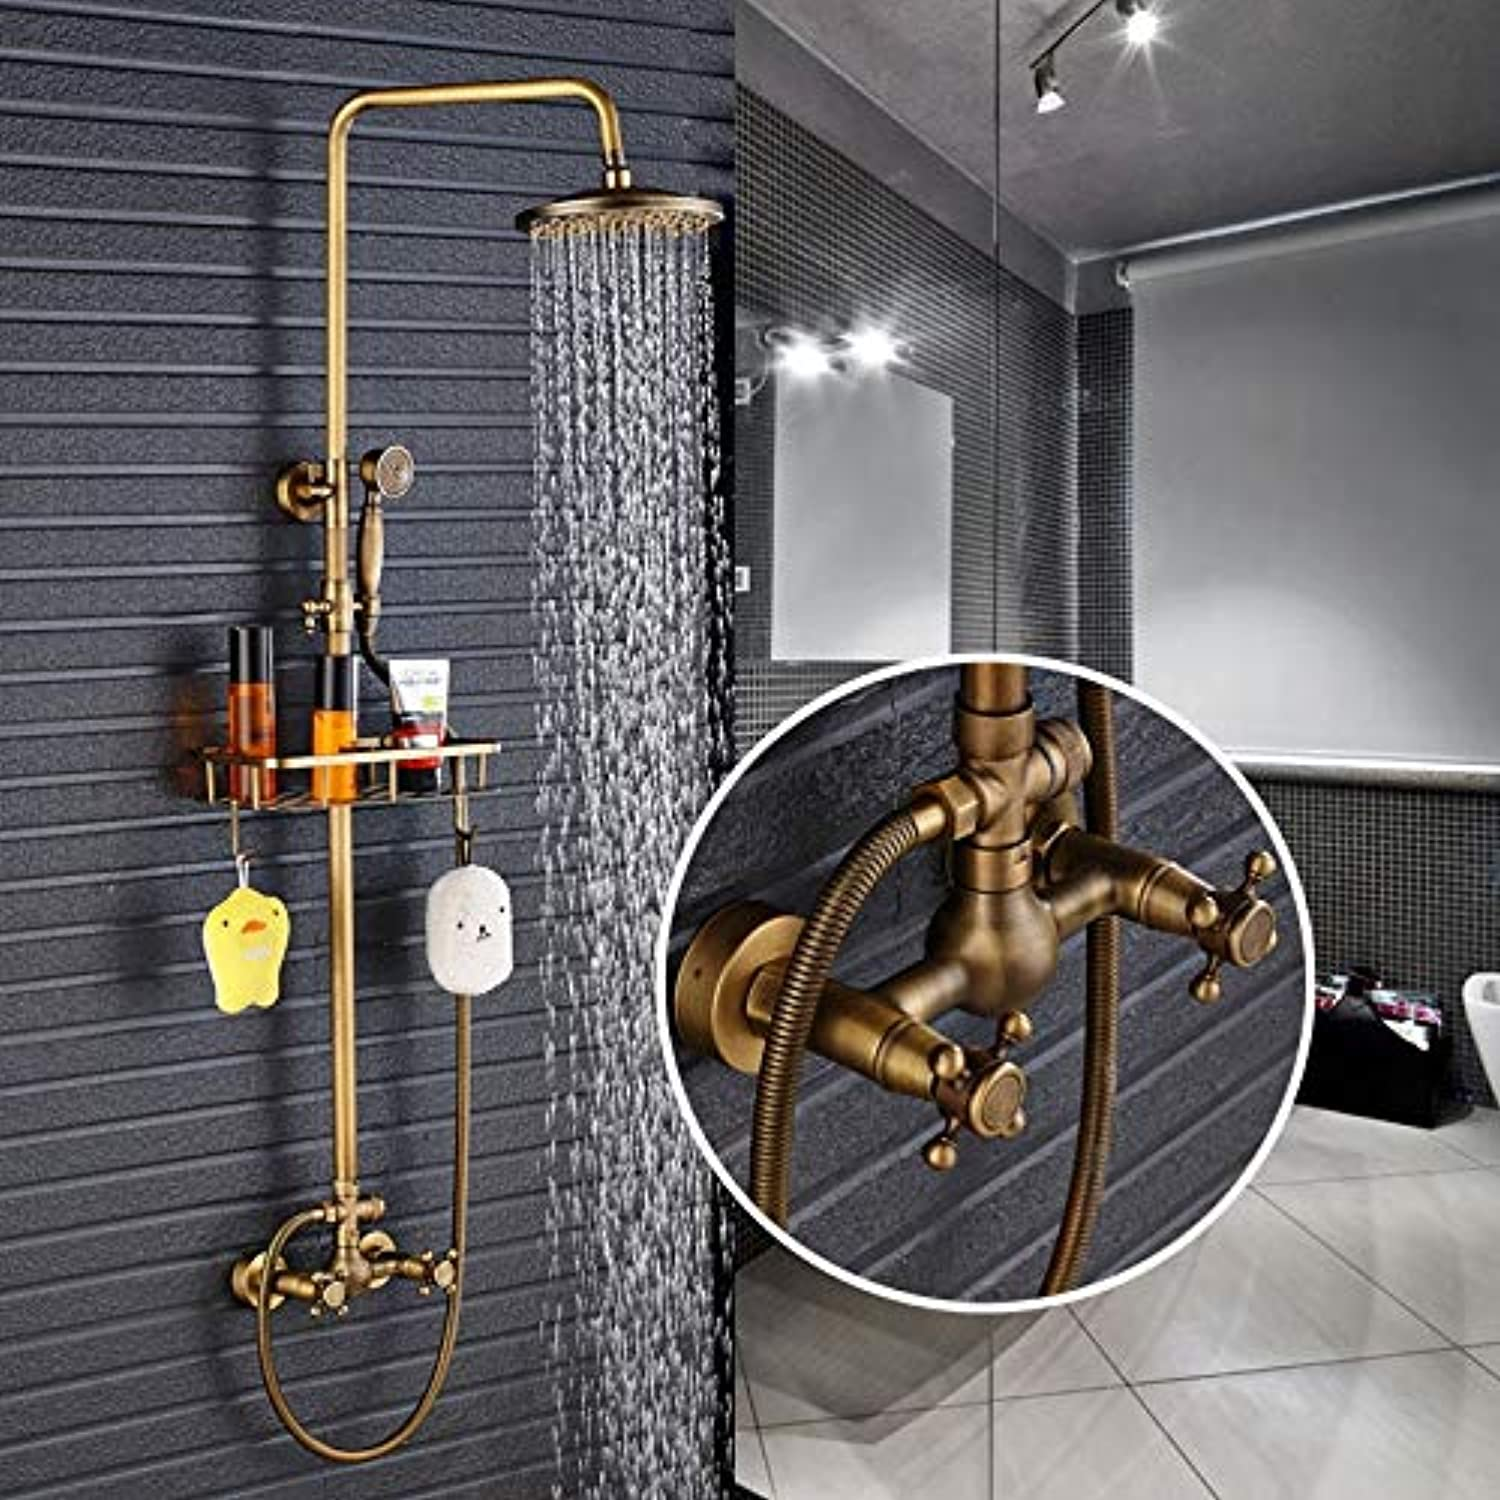 Antique Brass Shower Faucet 8-inch Hand-held Shower Head Wall-Mounted Faucet Mixer